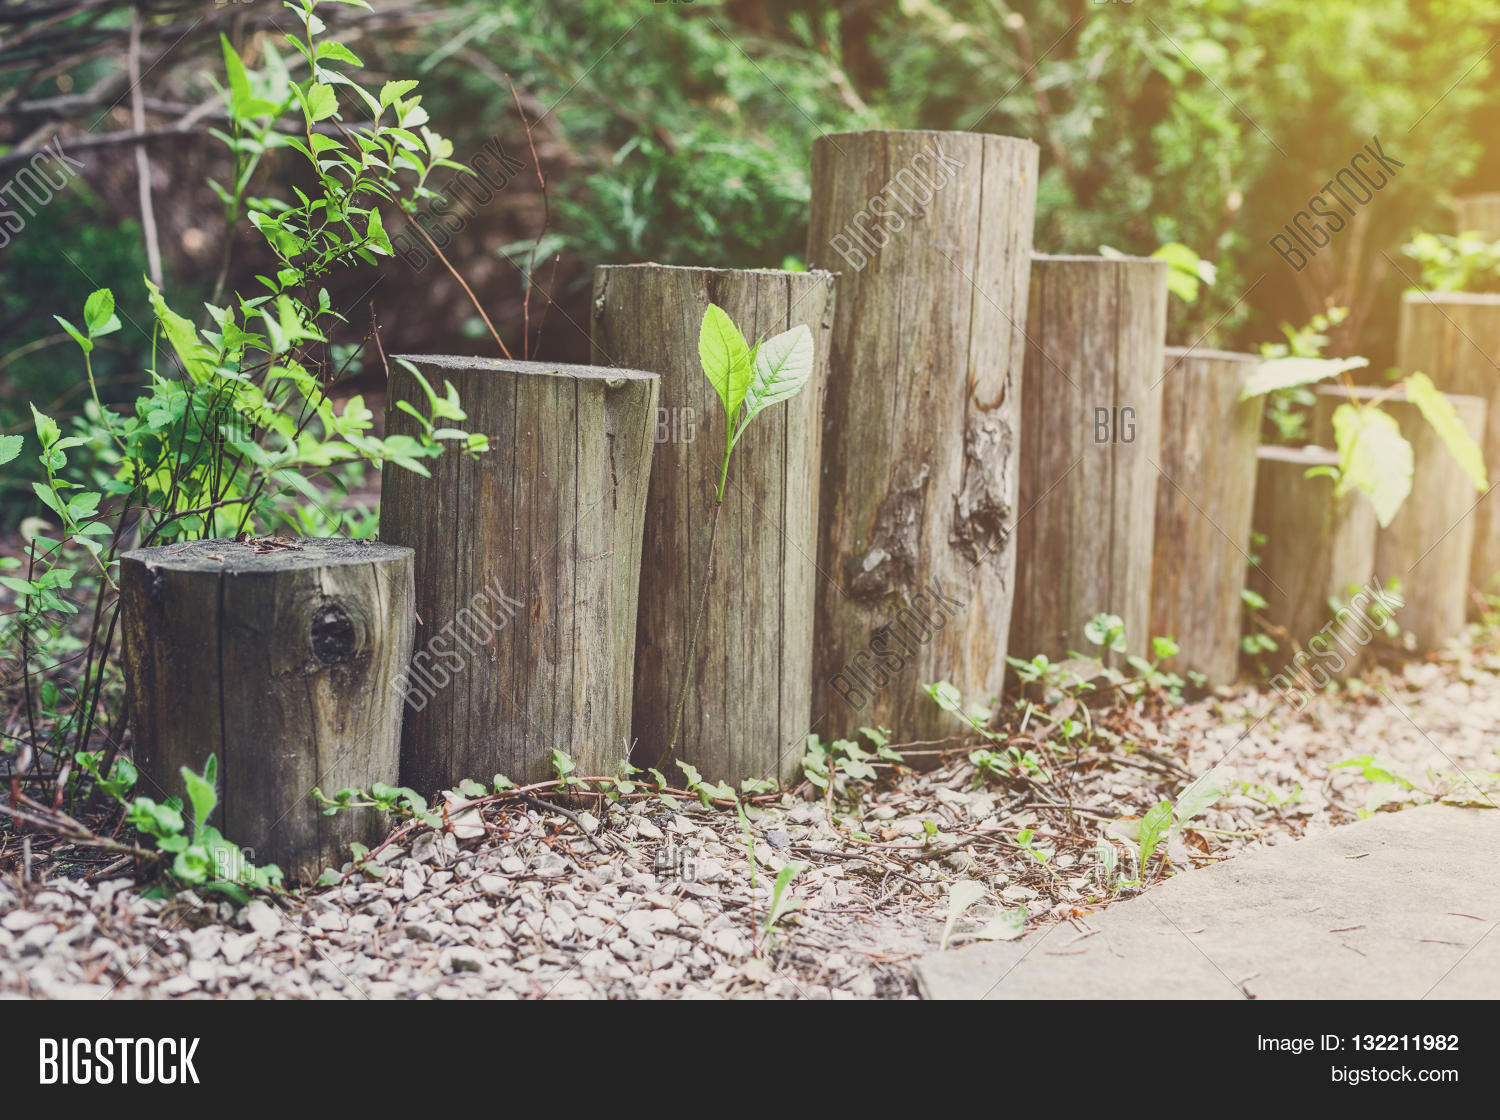 Landscaping With Wood Logs : Beautiful landscape design garden path tiles closeup with wooden log